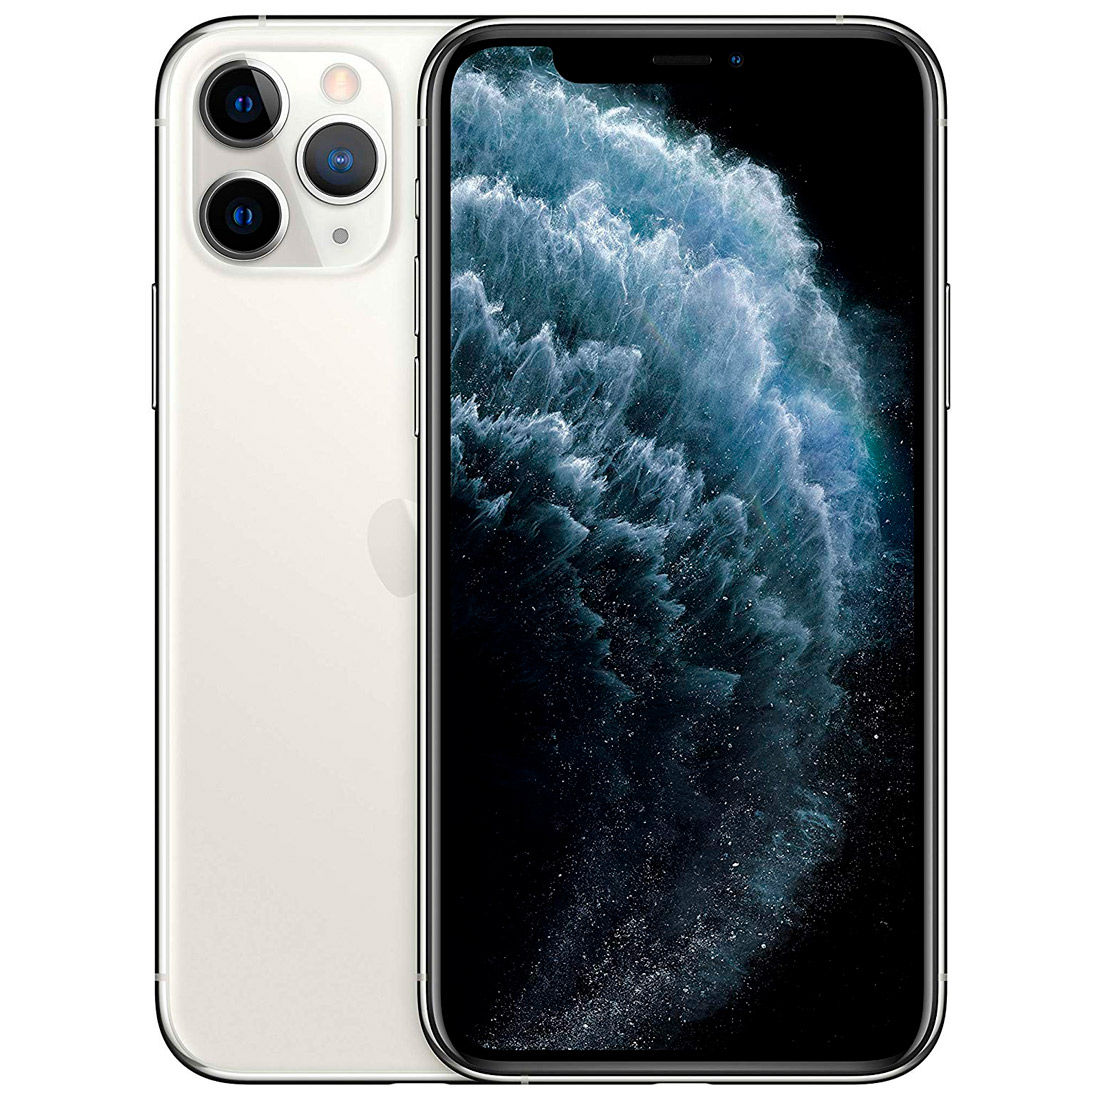 Smartphone iPhone 11 Pro 256GB Silver 5.8""